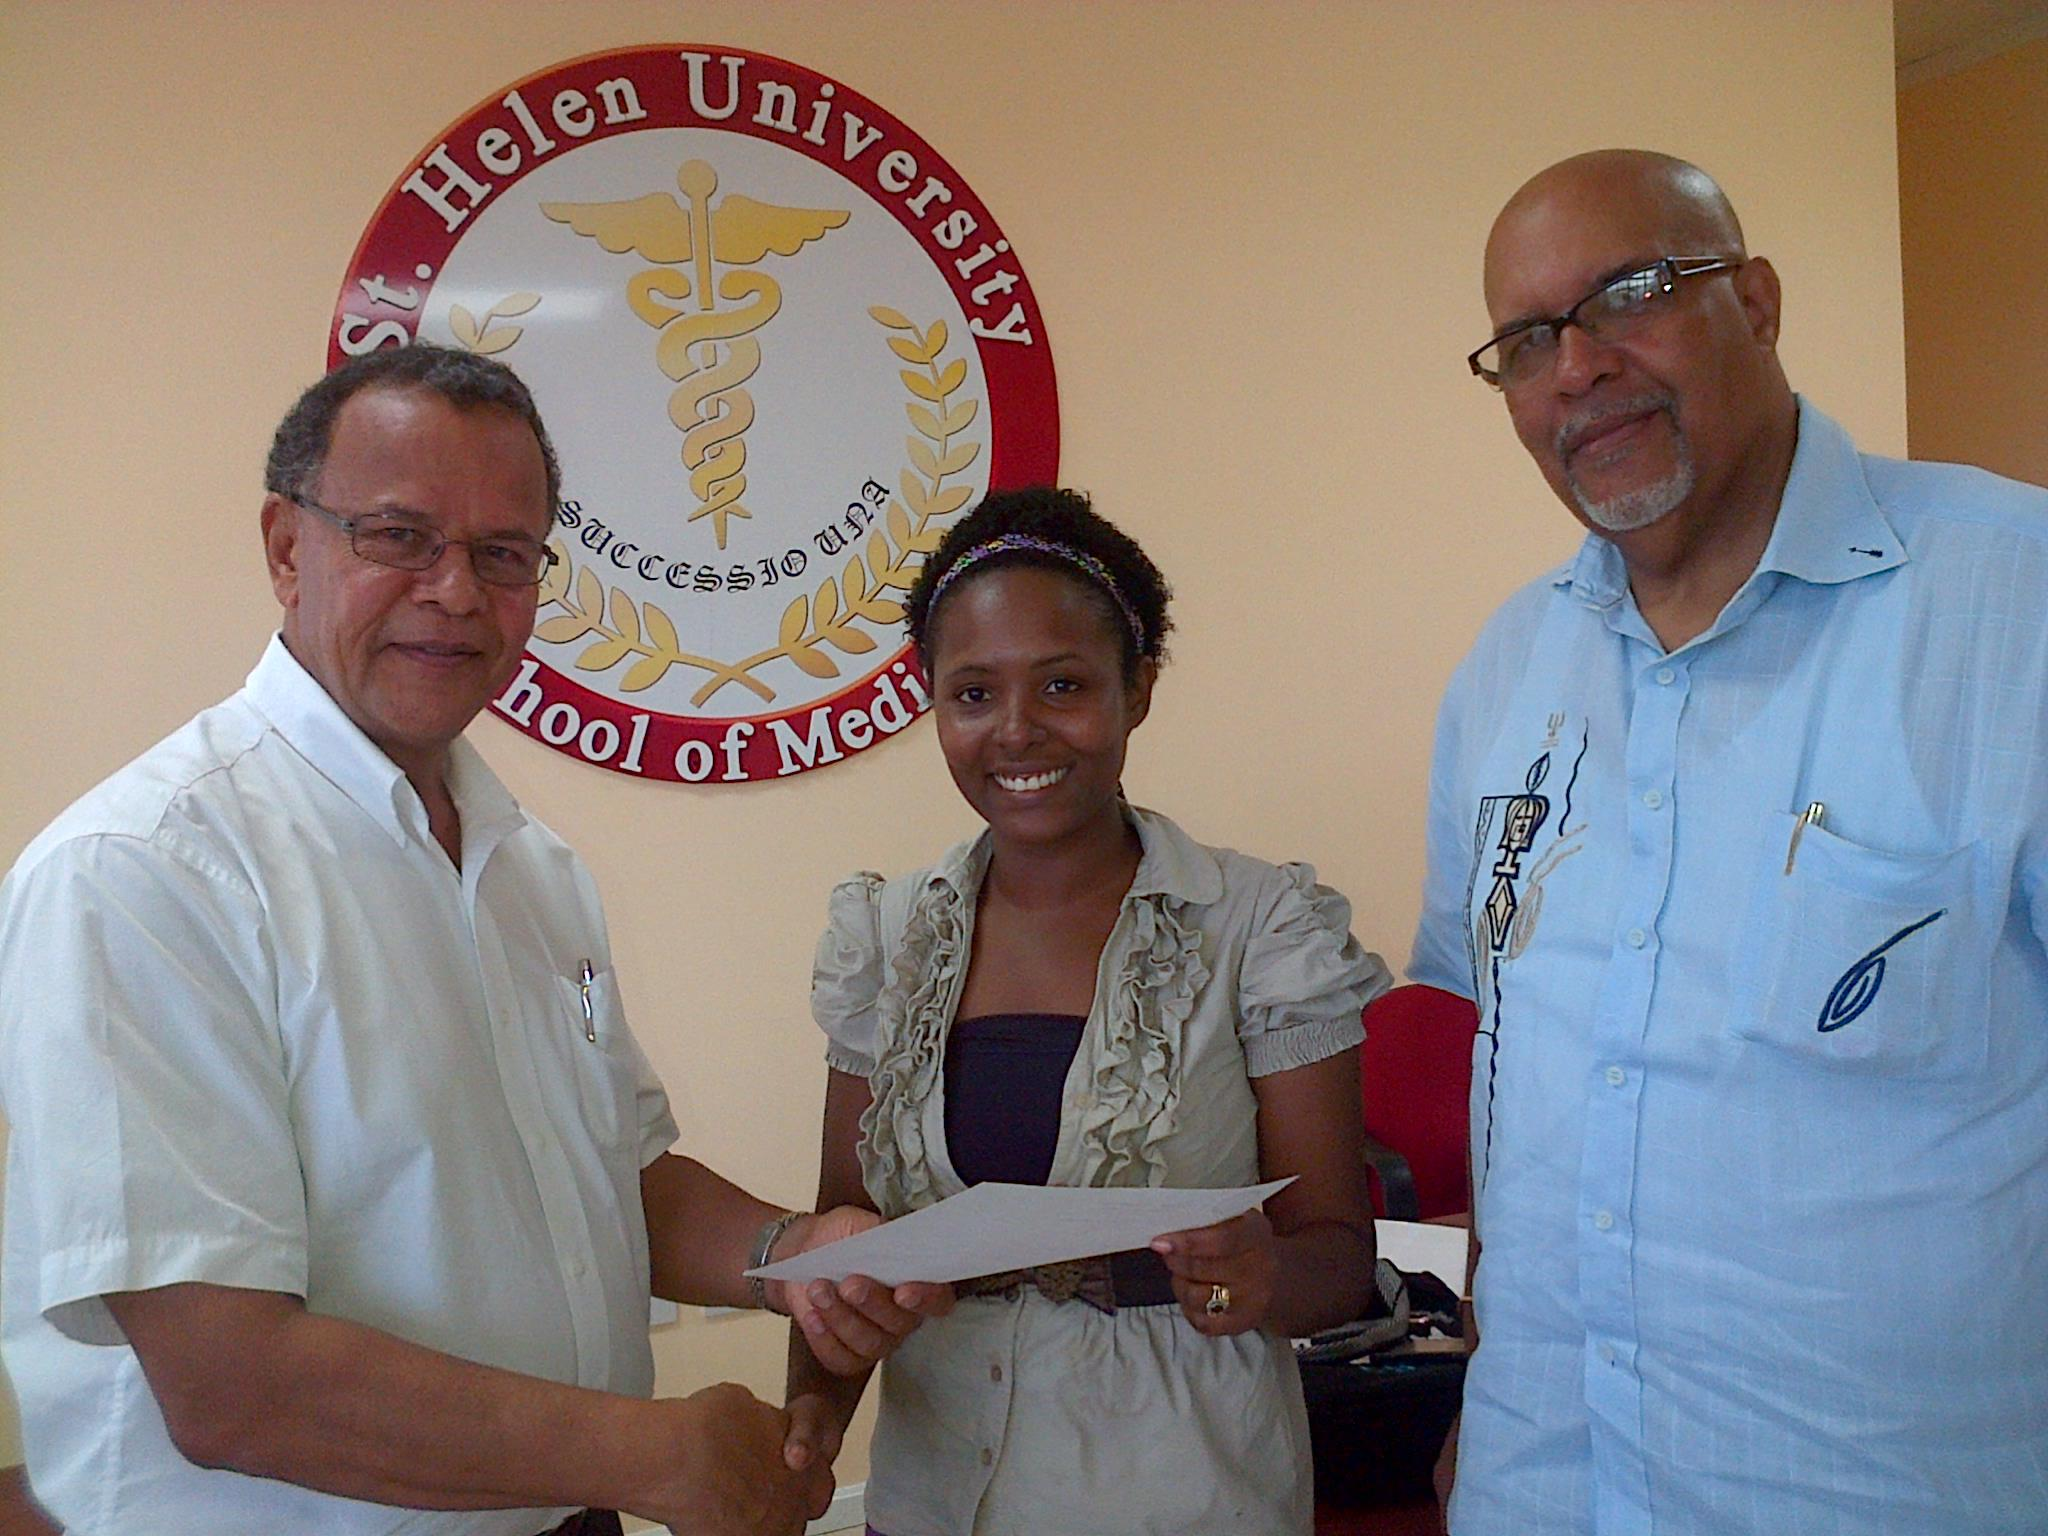 St. Helen University awards first full Scholarship to St. Lucian student (St Lucia News)